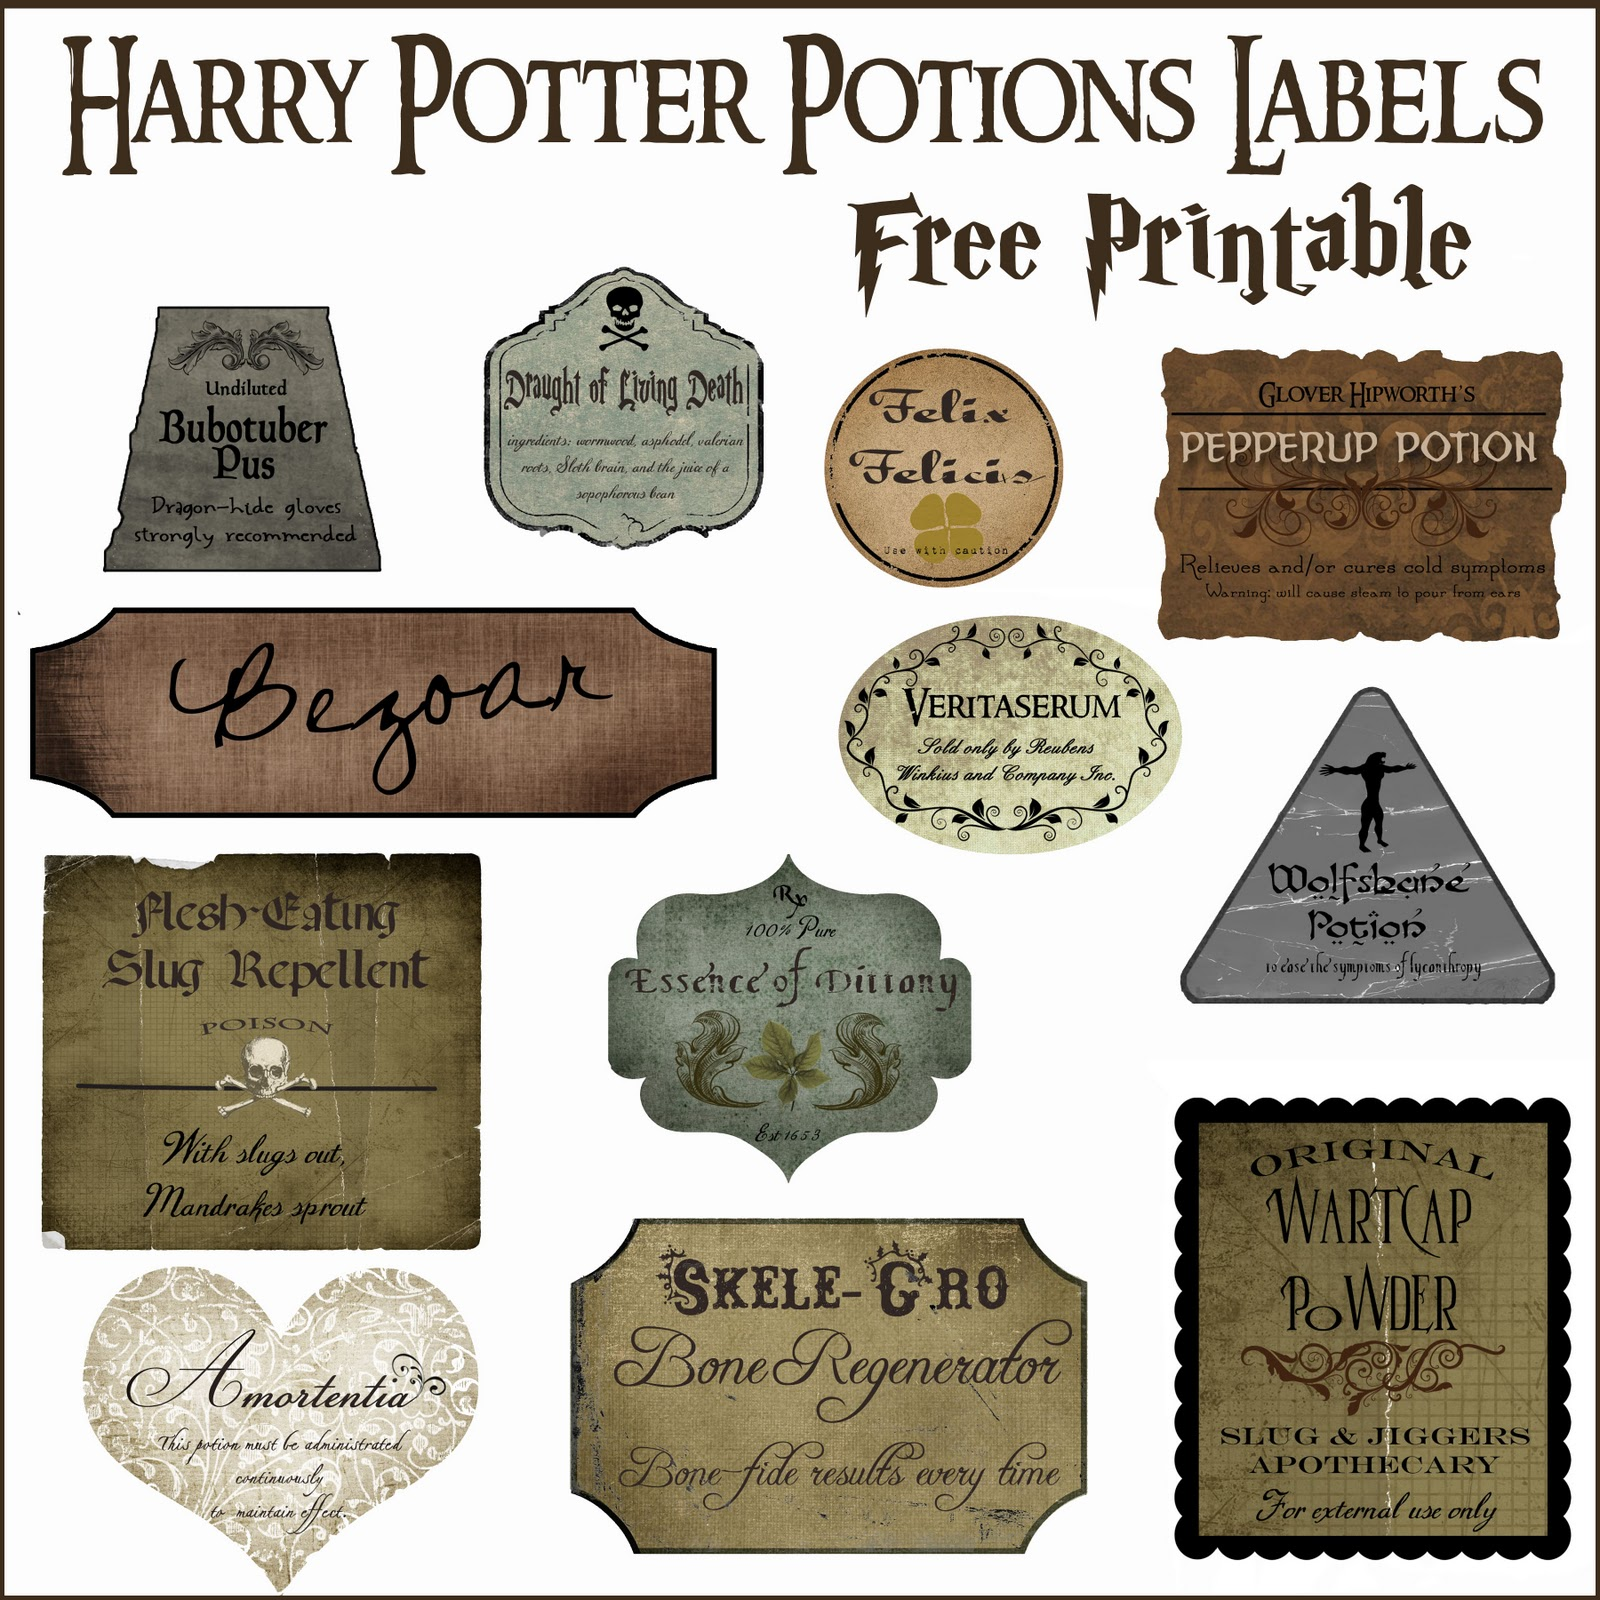 photograph regarding Harry Potter Potion Book Printable identify Harry Potter Potion Label Printables - Earlier mentioned the Massive Moon